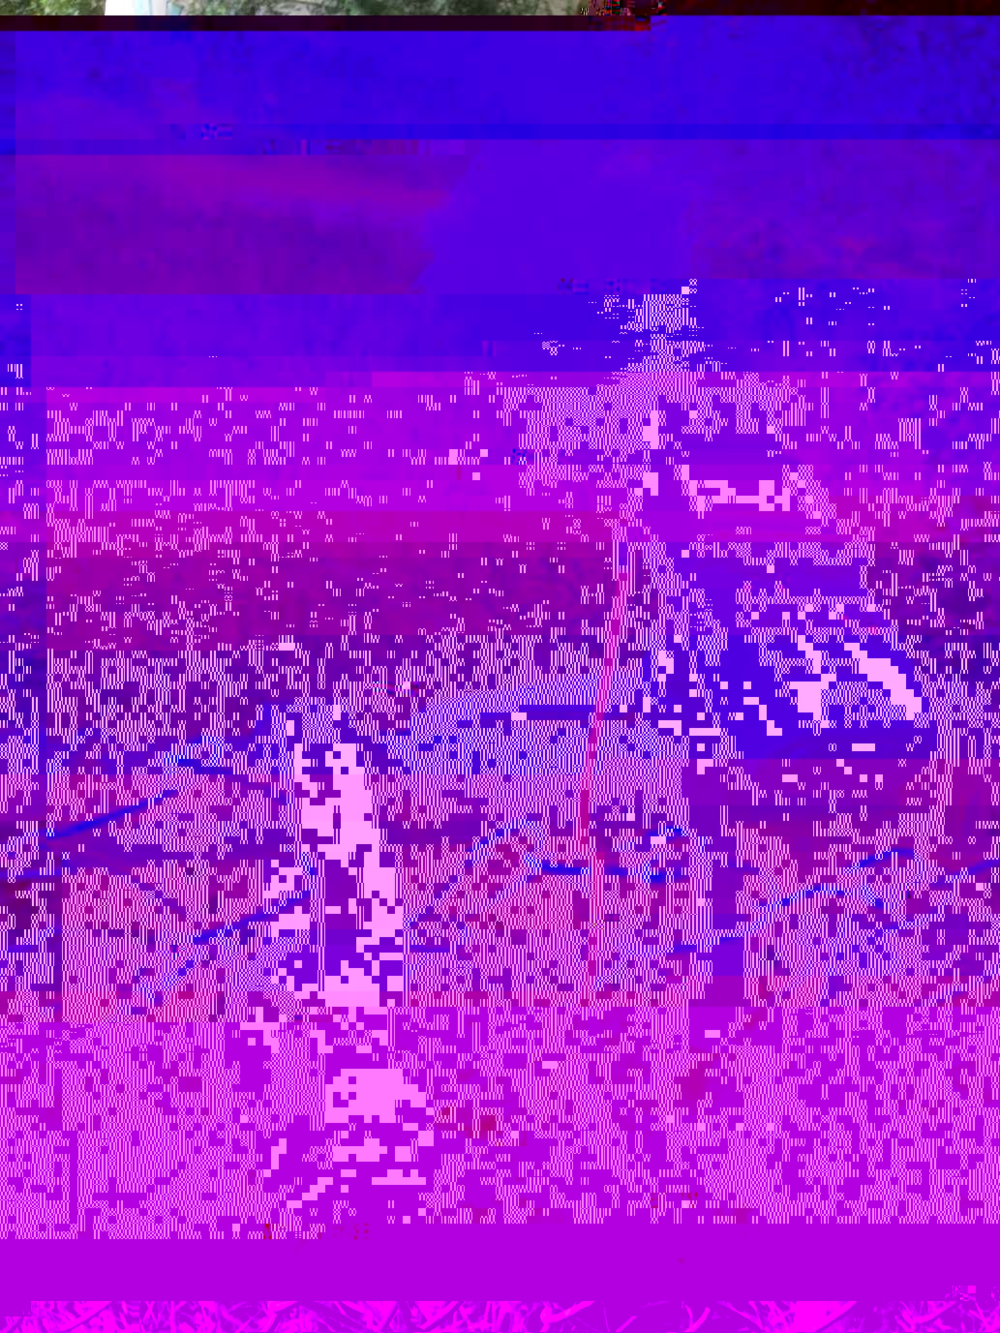 DhwsbY9UcAEmehn-glitched-7-12-2018-3-18-56-PM.png